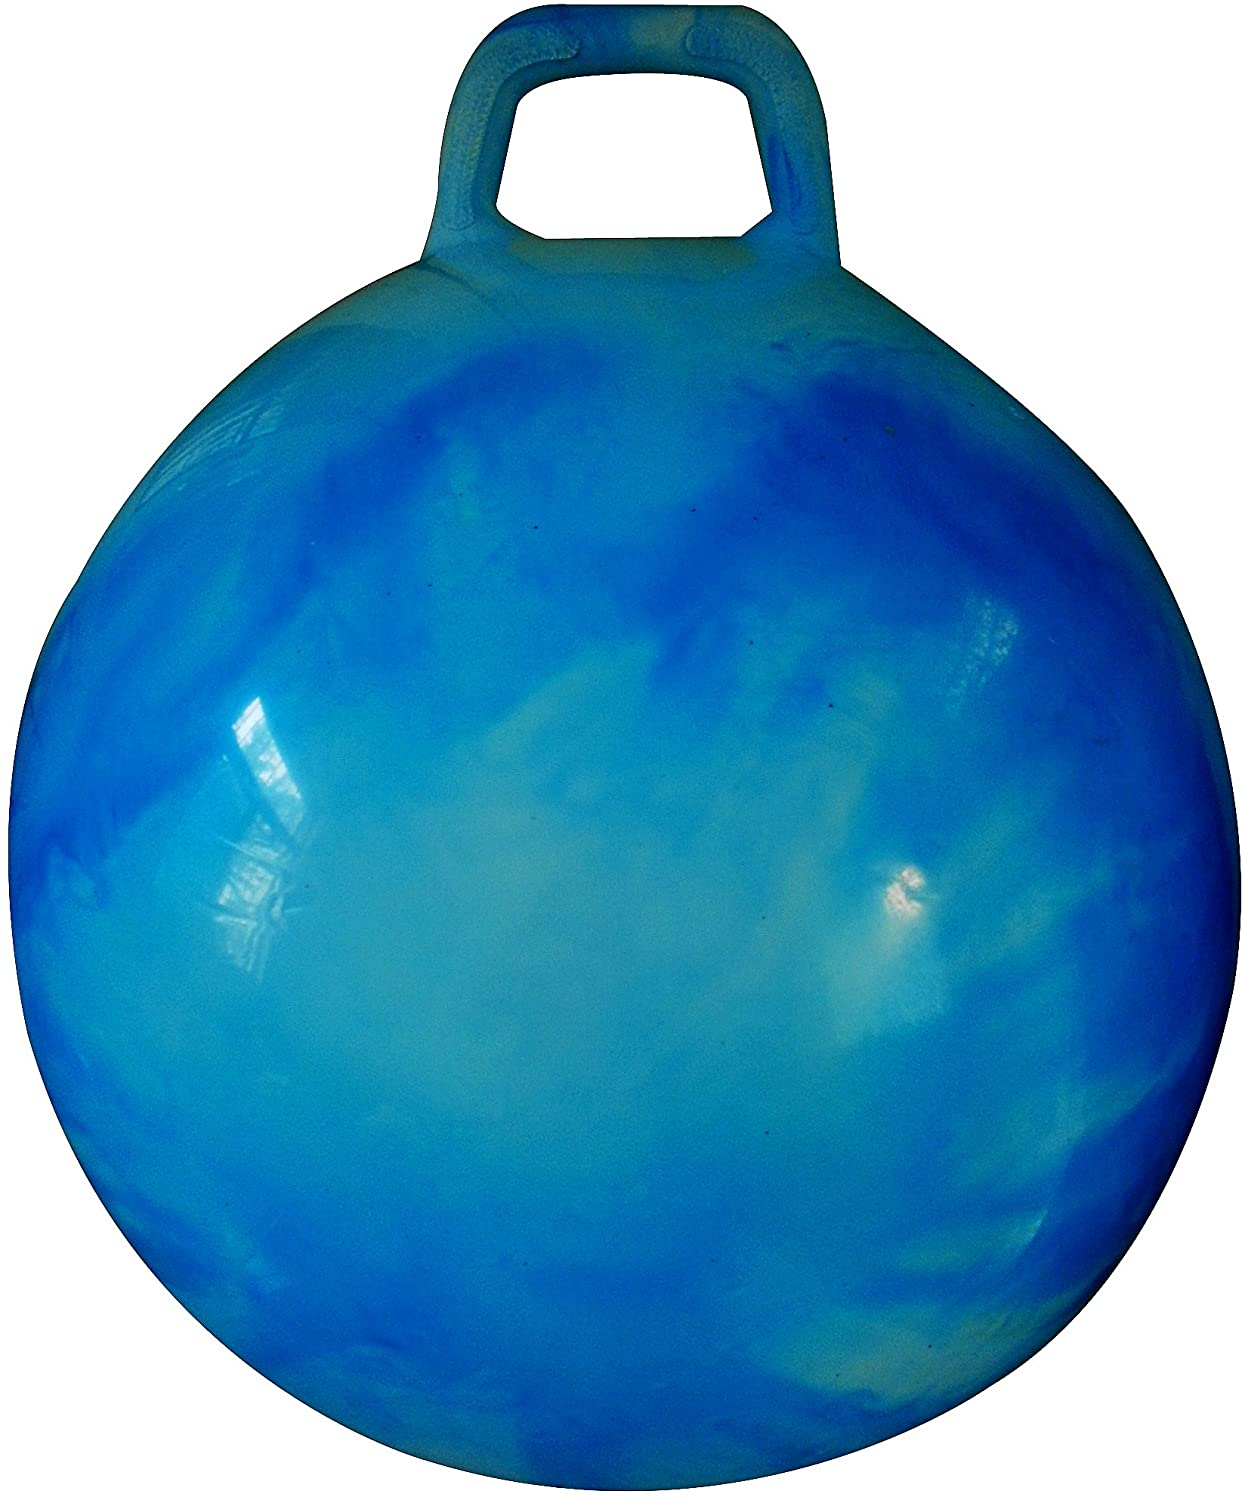 AppleRound Space Hopper Ball: 28in/70cm Diameter for Ages 13 and Up, Pump Included (Hop Ball, Kangaroo Bouncer, Hoppity Hop, Sit and Bounce, Jumping Ball)